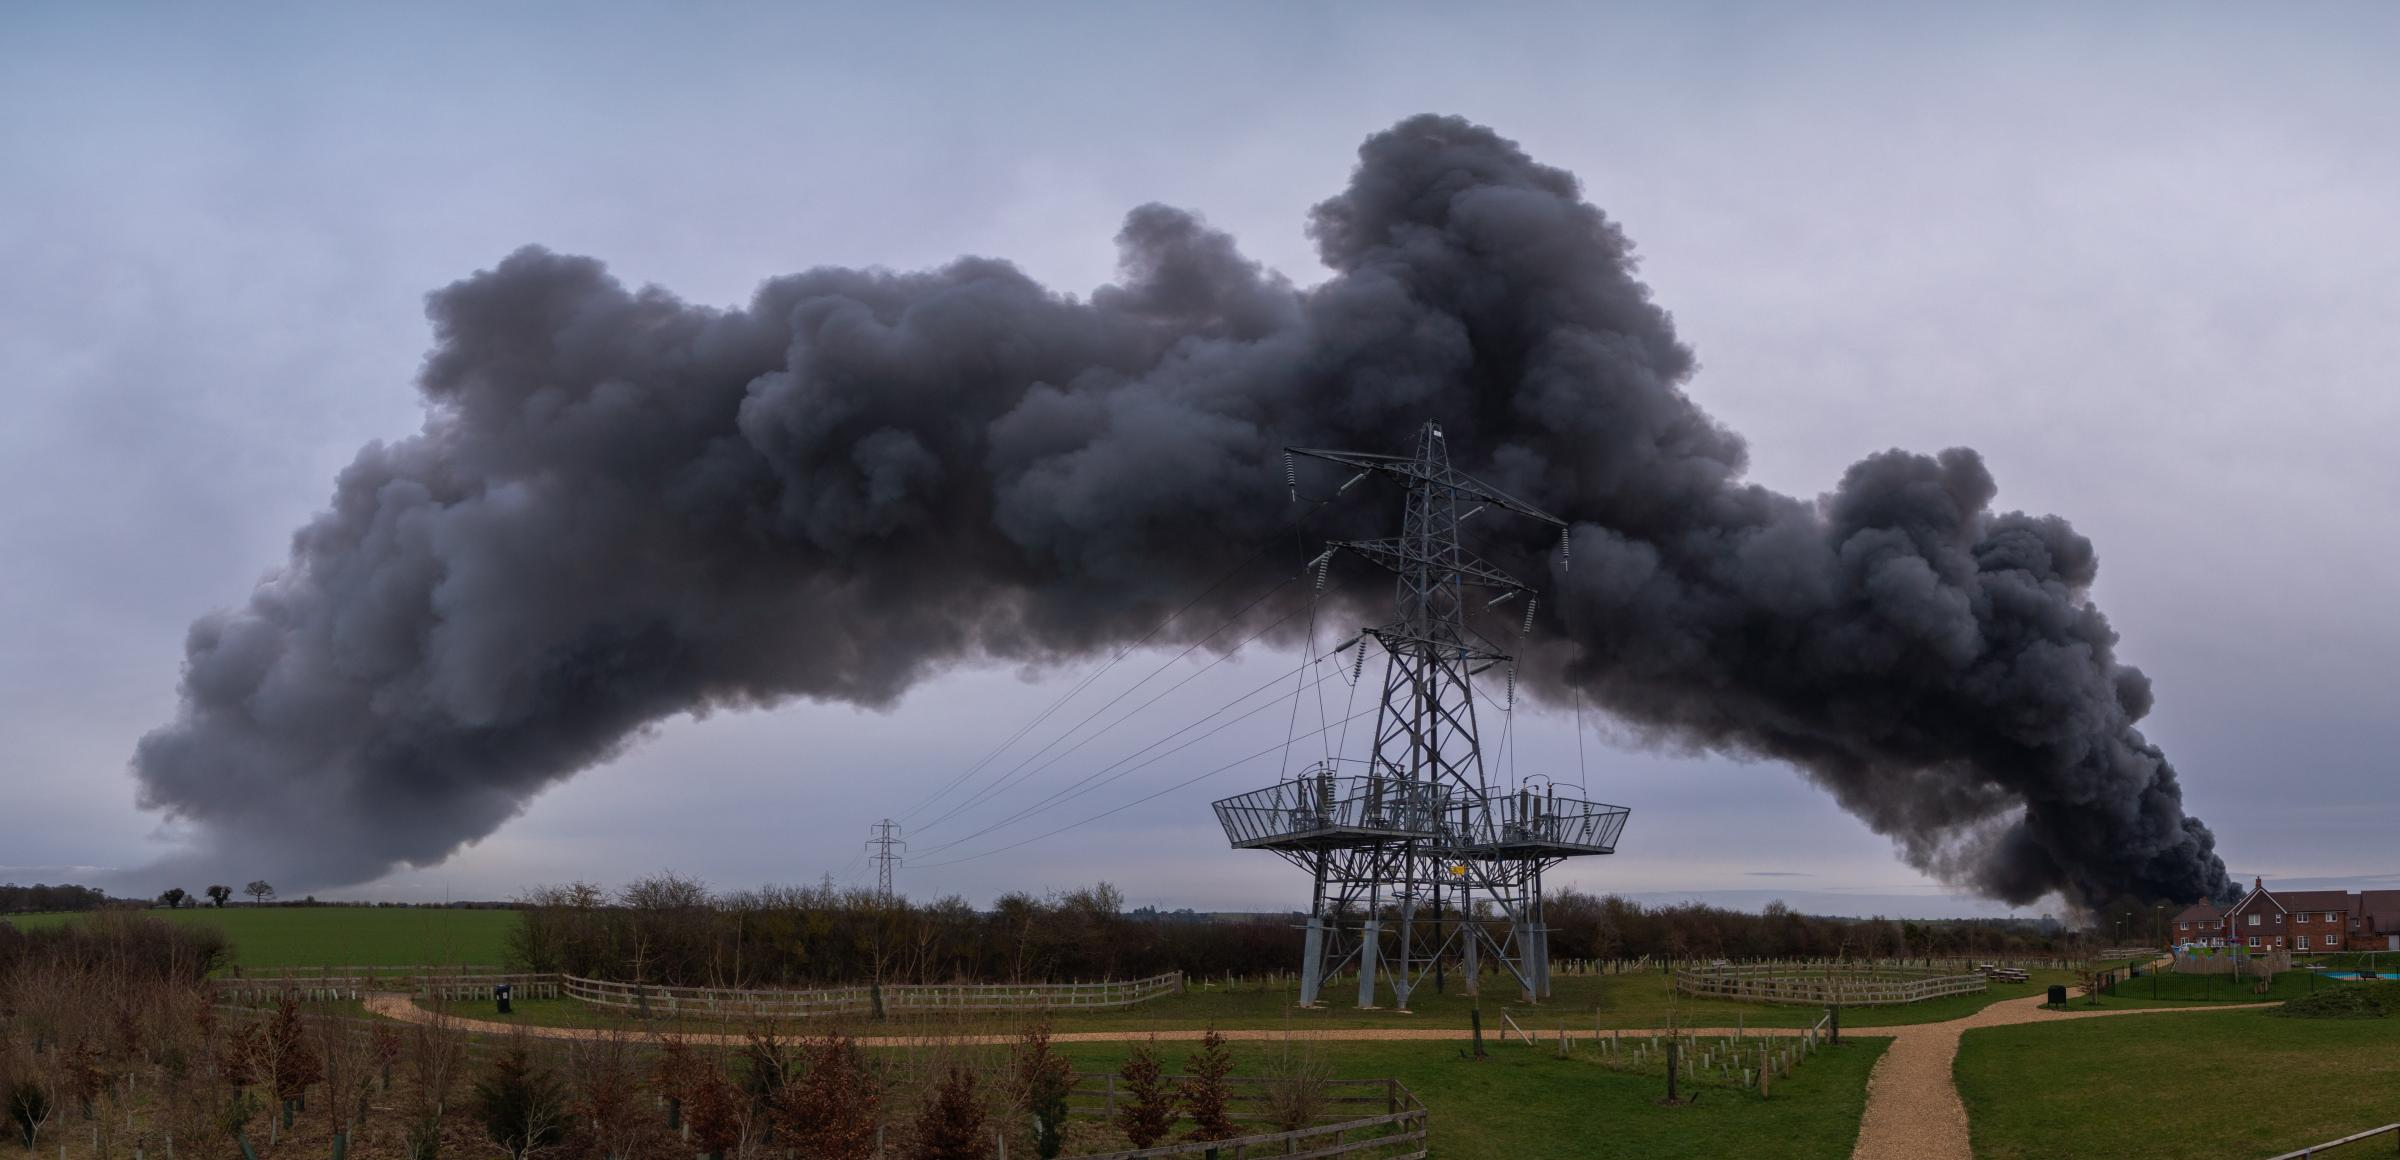 The plume of smoke over Andover. Image: Michael Webb